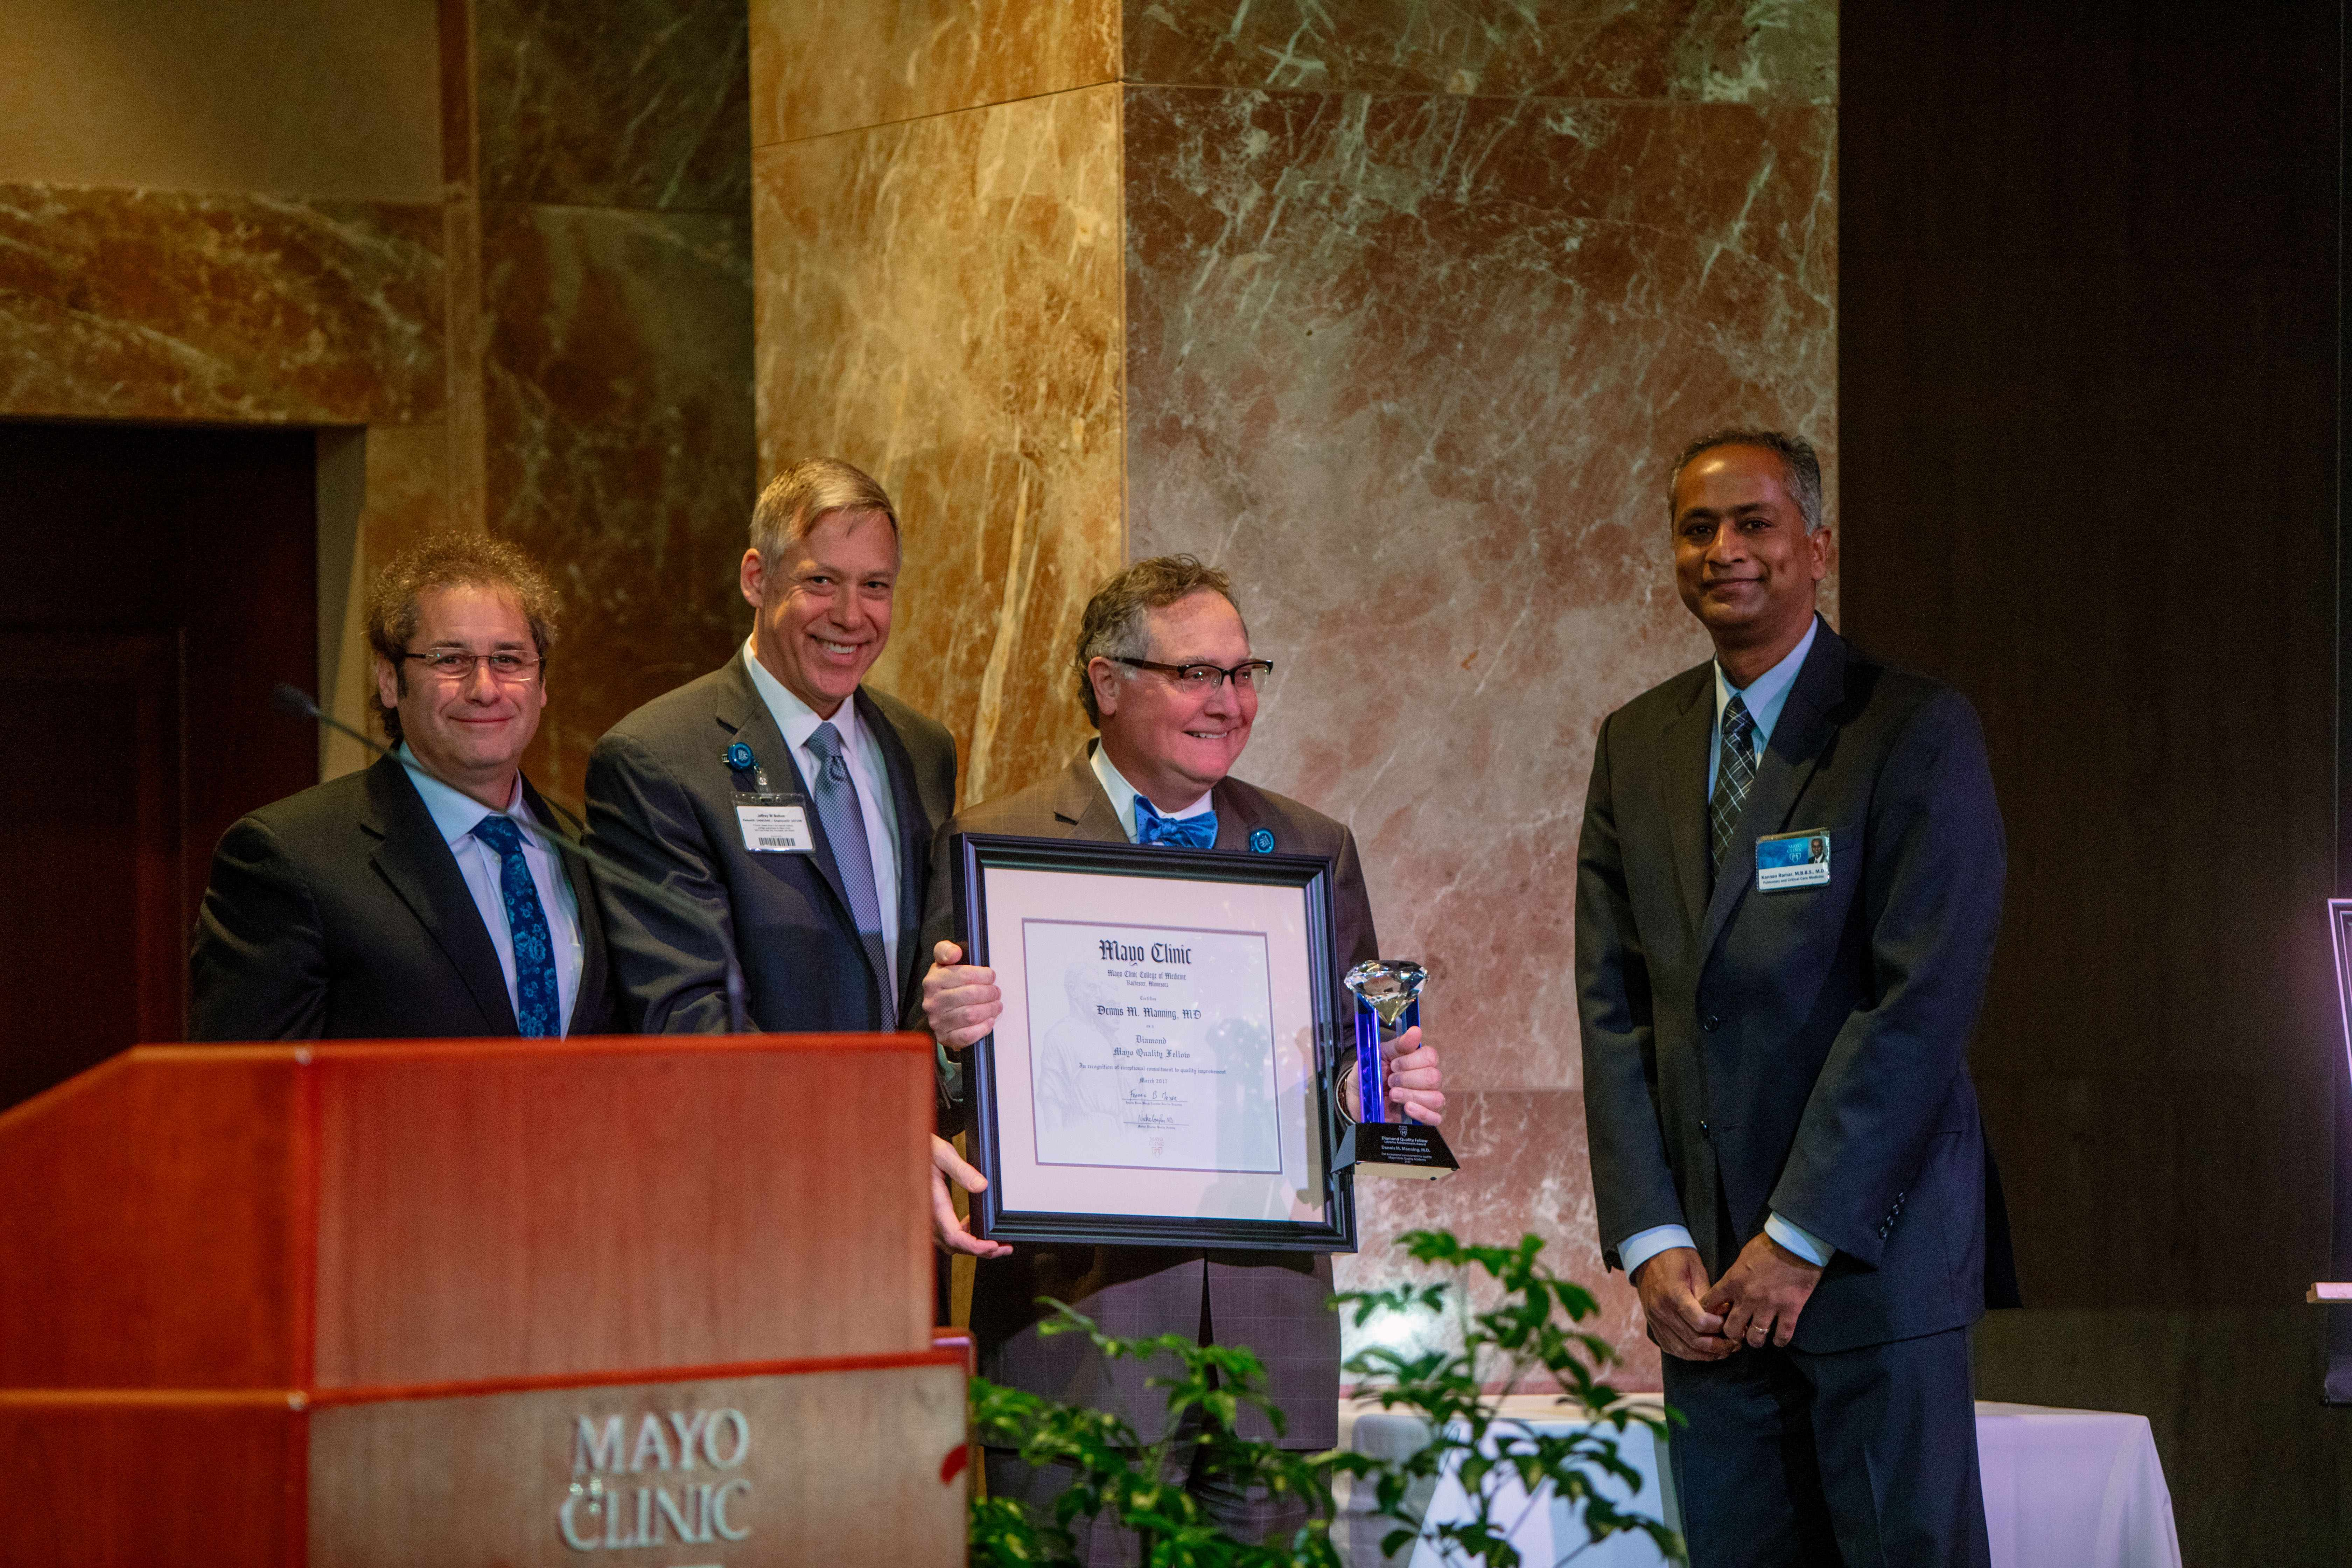 Pictured from left to right: Dr. Fred Meyer, Jeff Bolton, Dr. Dennis Manning, and Dr. Kannan Ramar